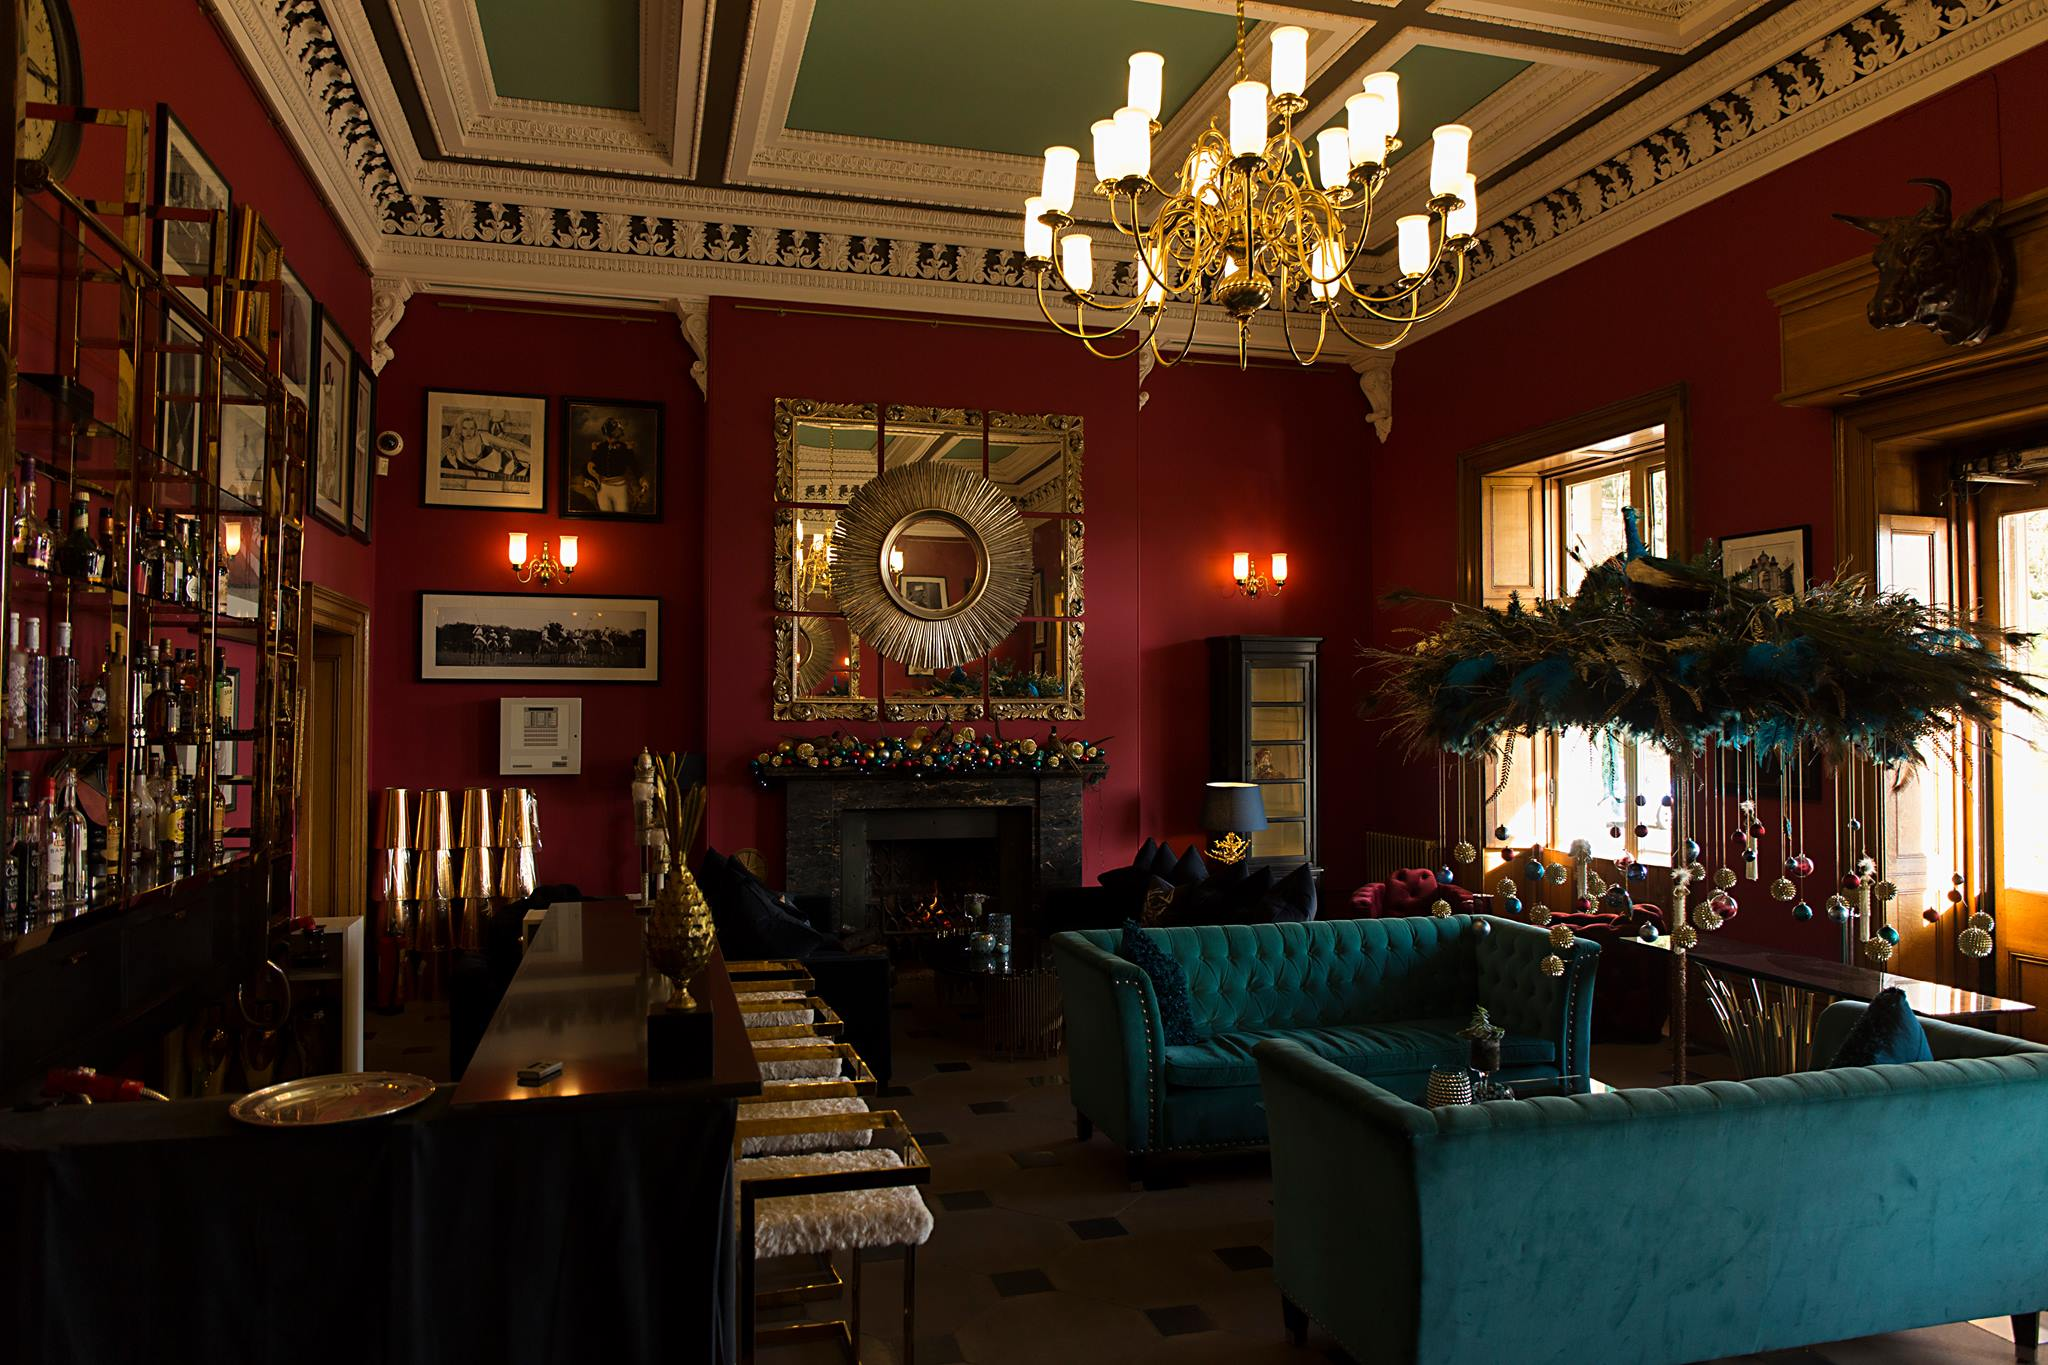 Full view of the entrance room with open fire